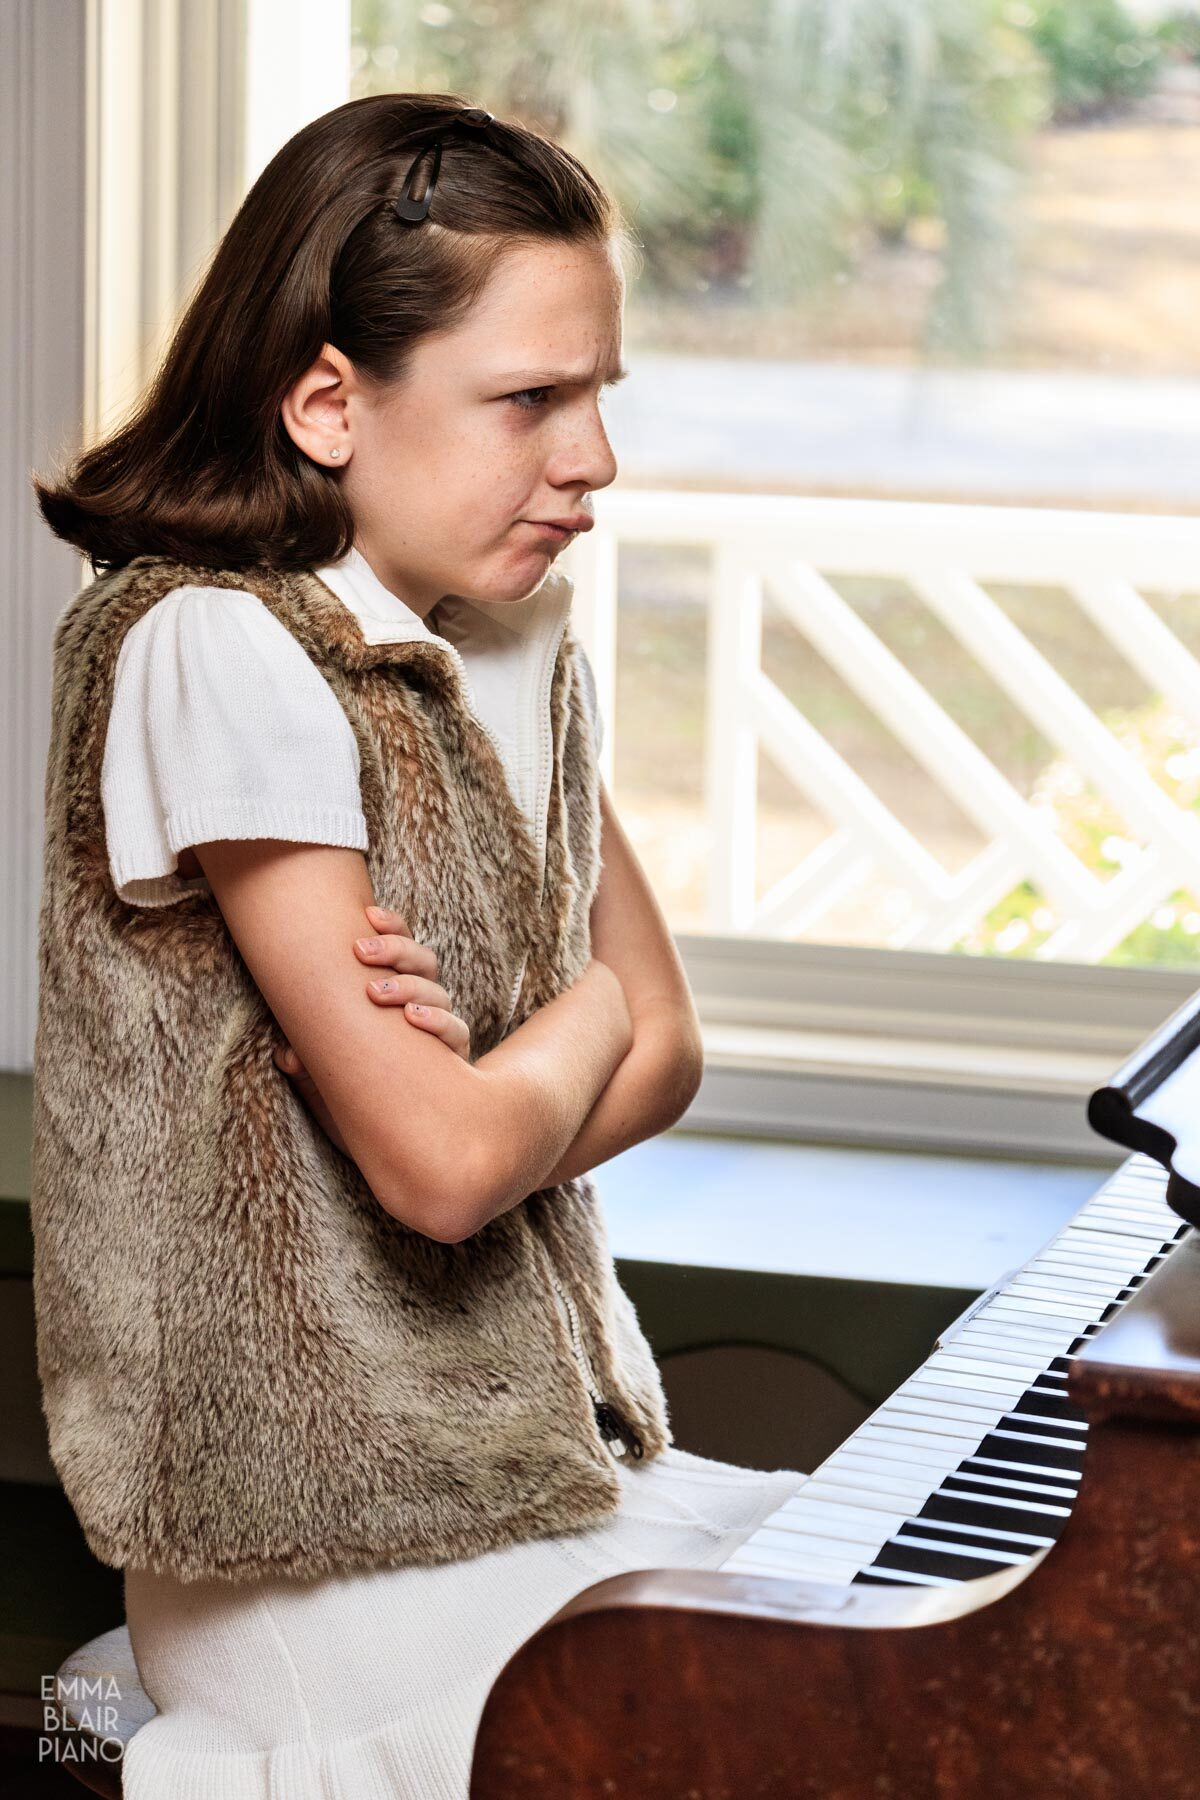 young girl frustrated with her piano music